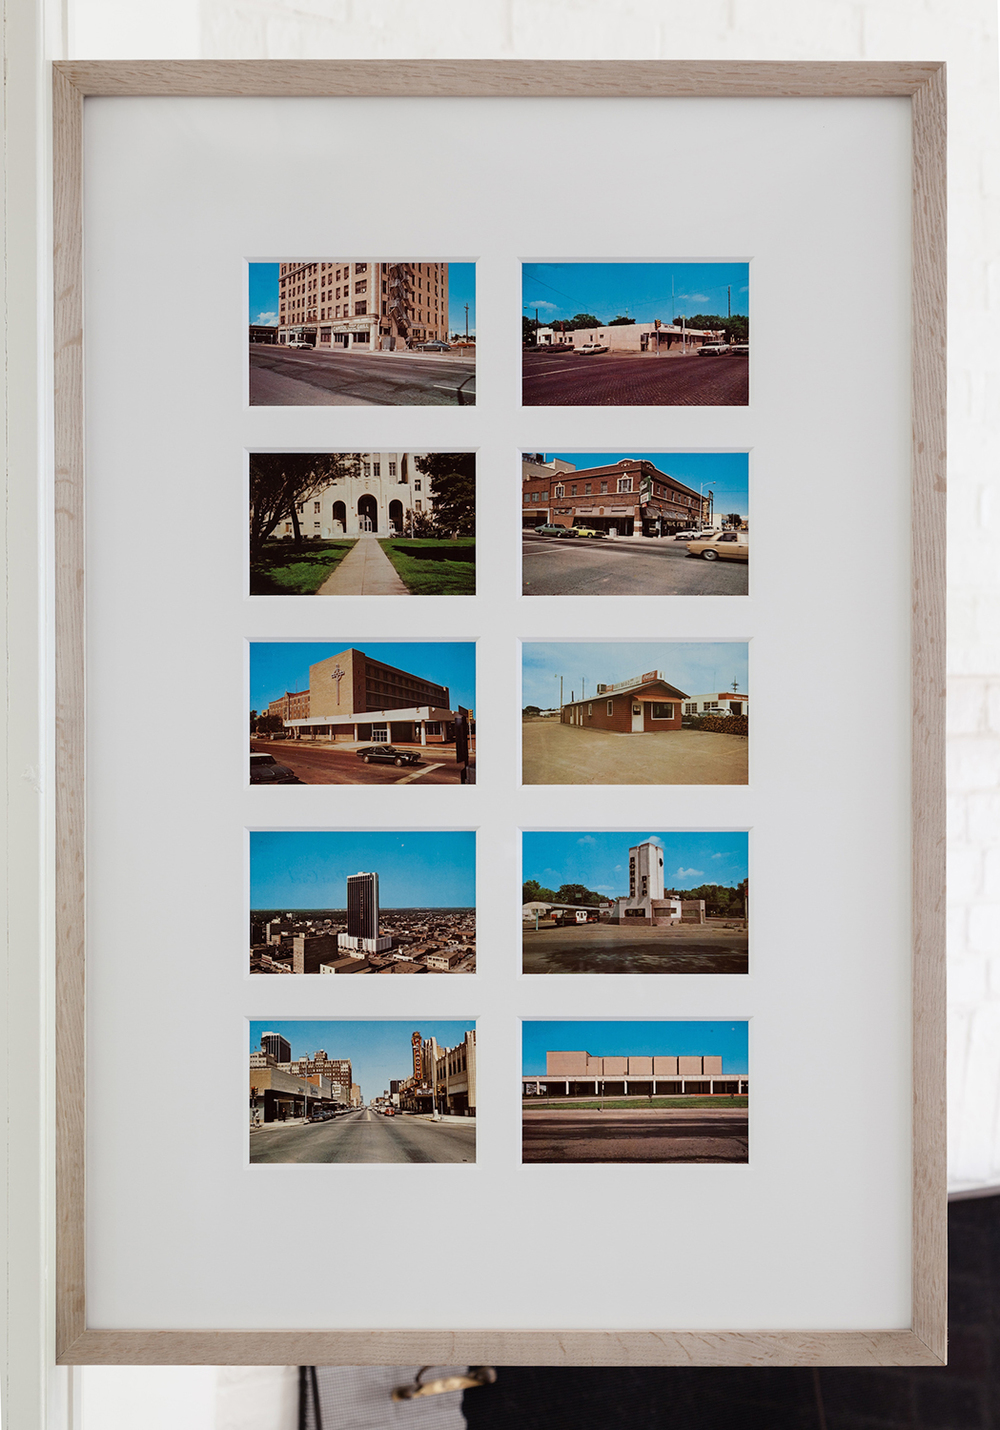 Stephen Shore   Amarillo ‐ Tall in Texas   1971  Postcards  3 1/2 x 5 1/2 inches each